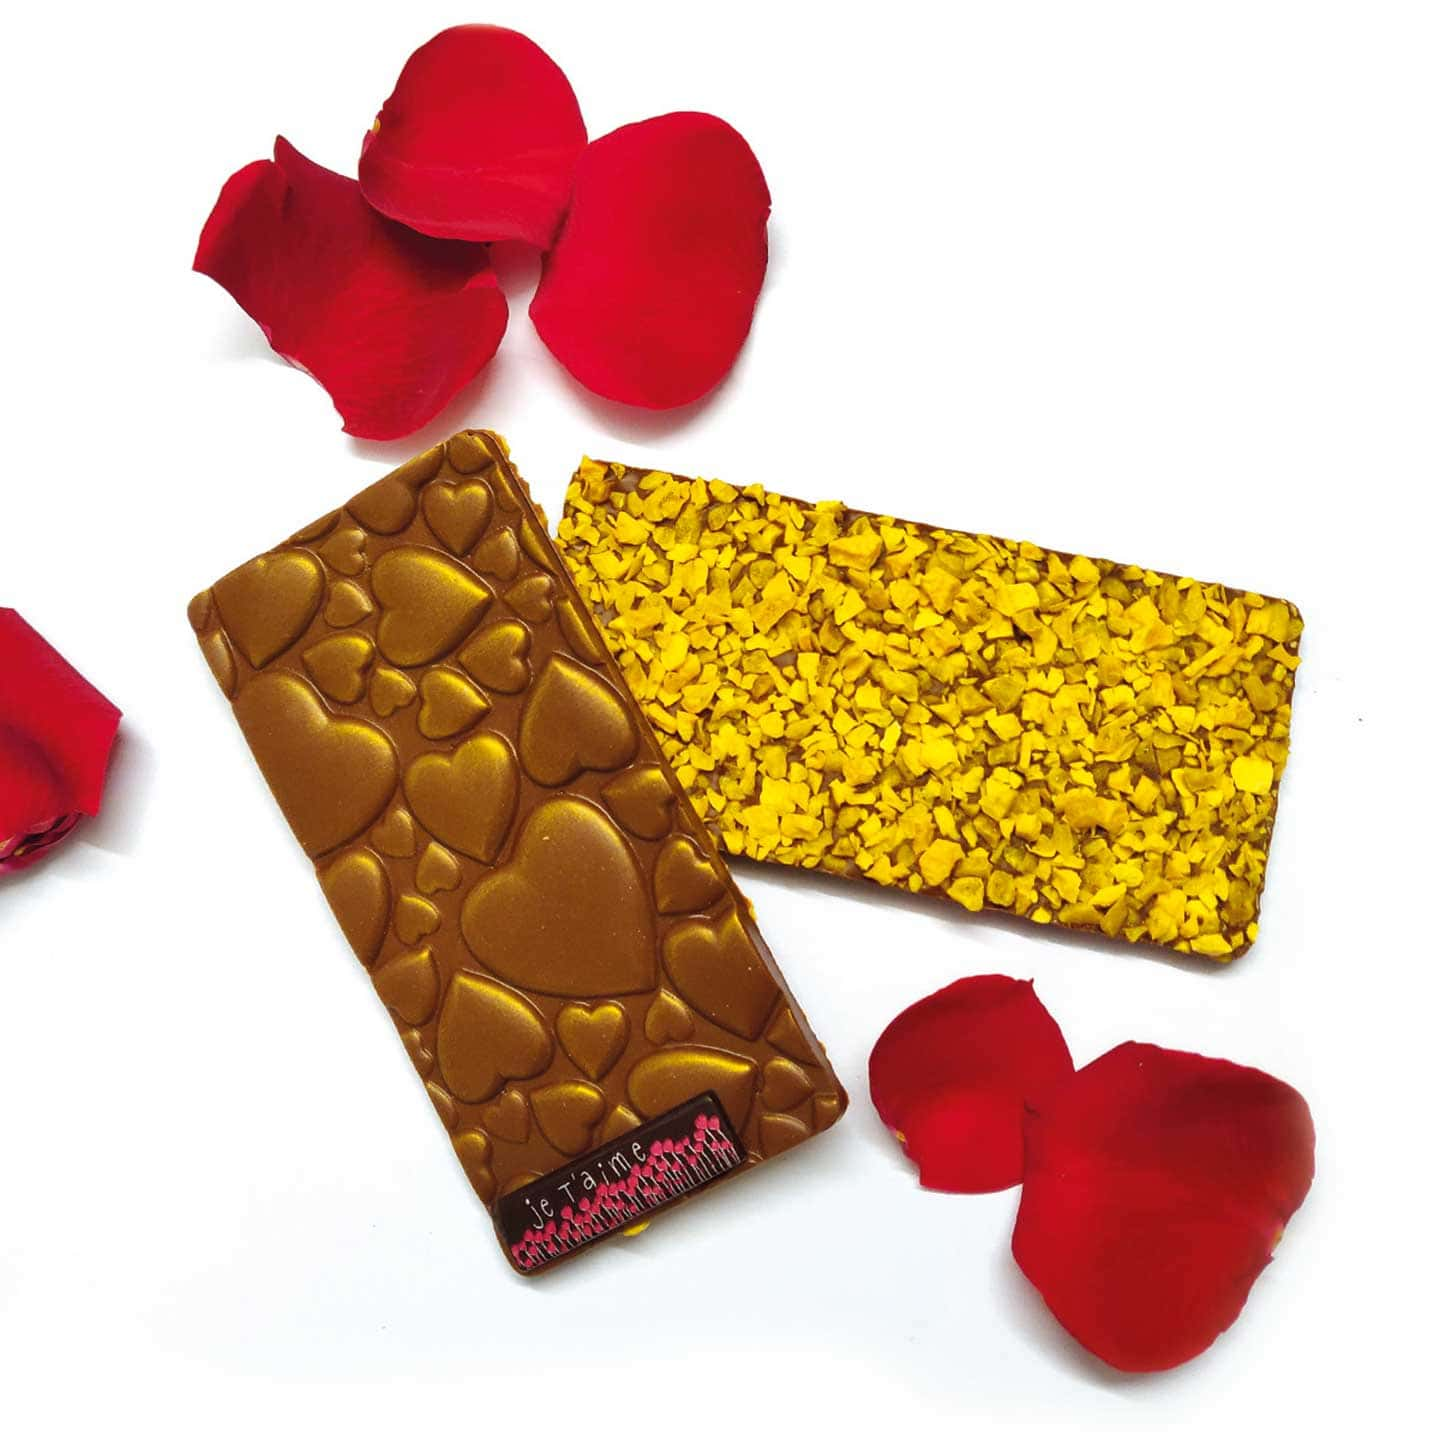 Tablette Chocolat Lait Mangue Passion 38% Saint Valentin 90g Poignée d'Amour